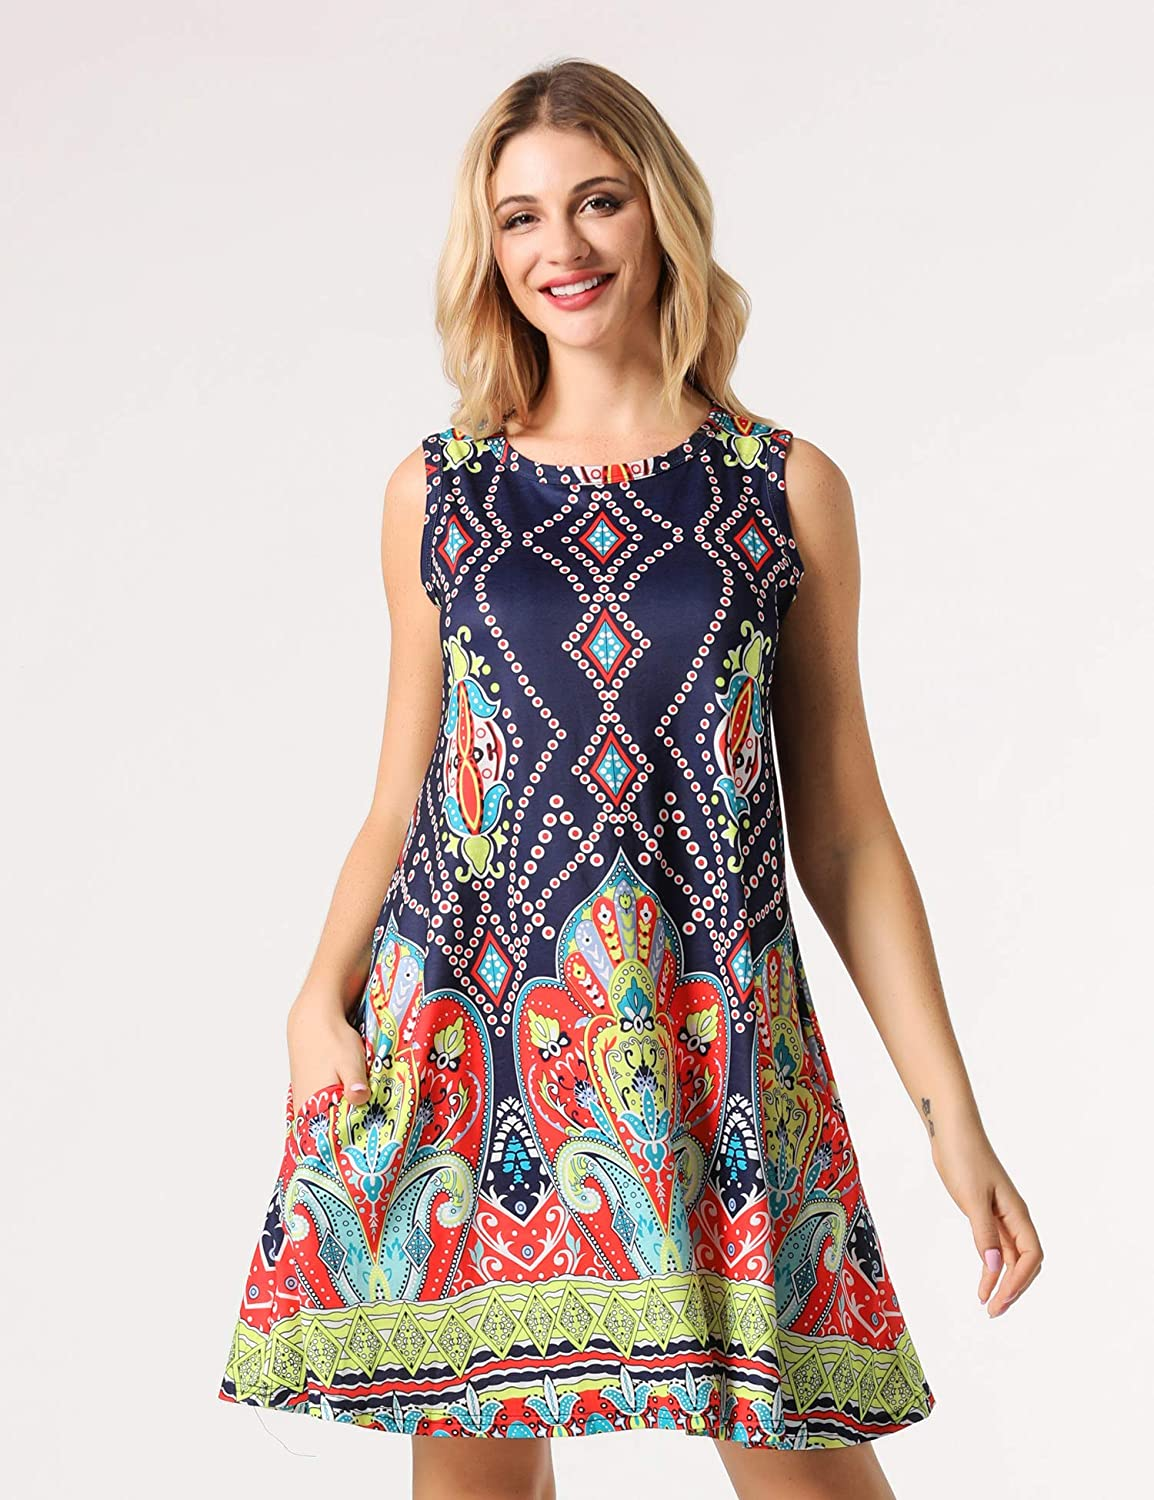 HIMNO Womens Bohemian Dresses Summer Damask Tunic Top Casual Floral Print Midi Dress with Pocket